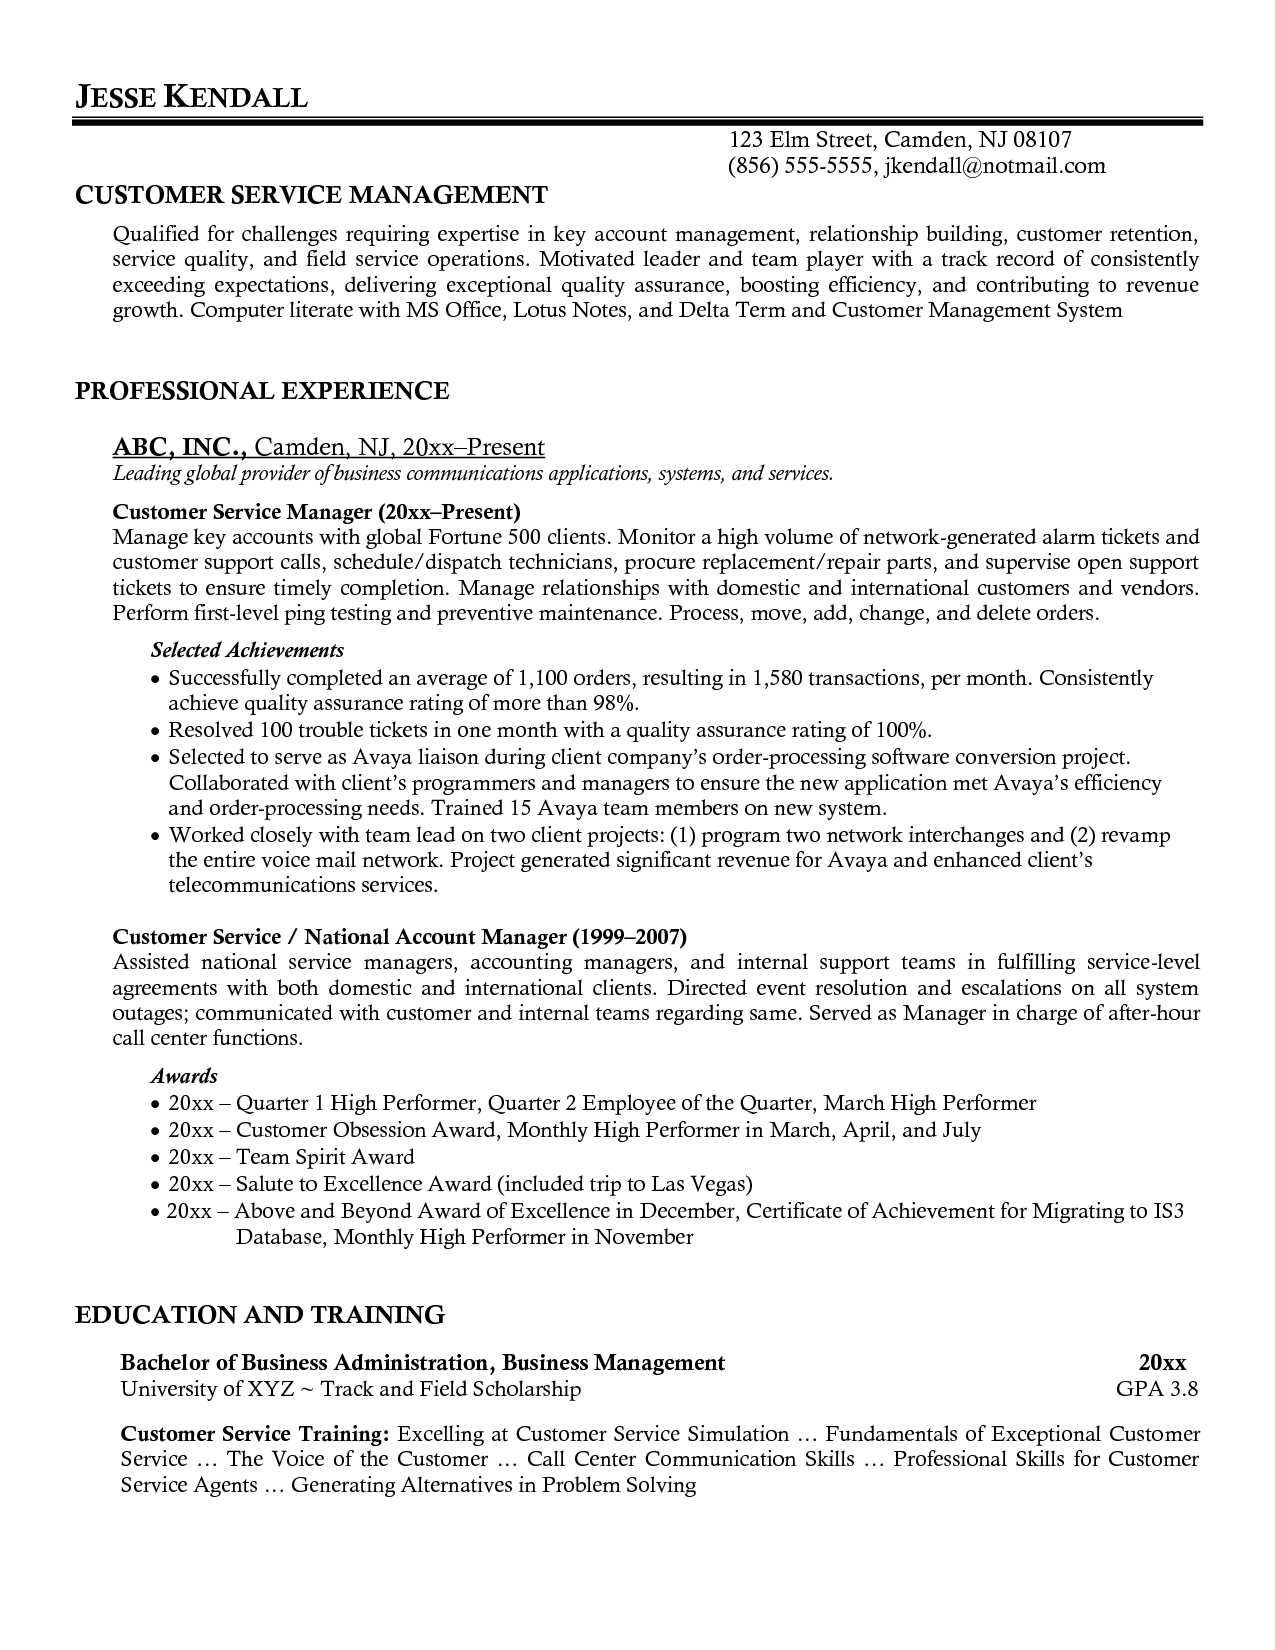 Customer Service Manager Resume Http Www Resumecareer Info Customer Service Manager Resume 6 Letter Example Business Proposal Letter Manager Resume